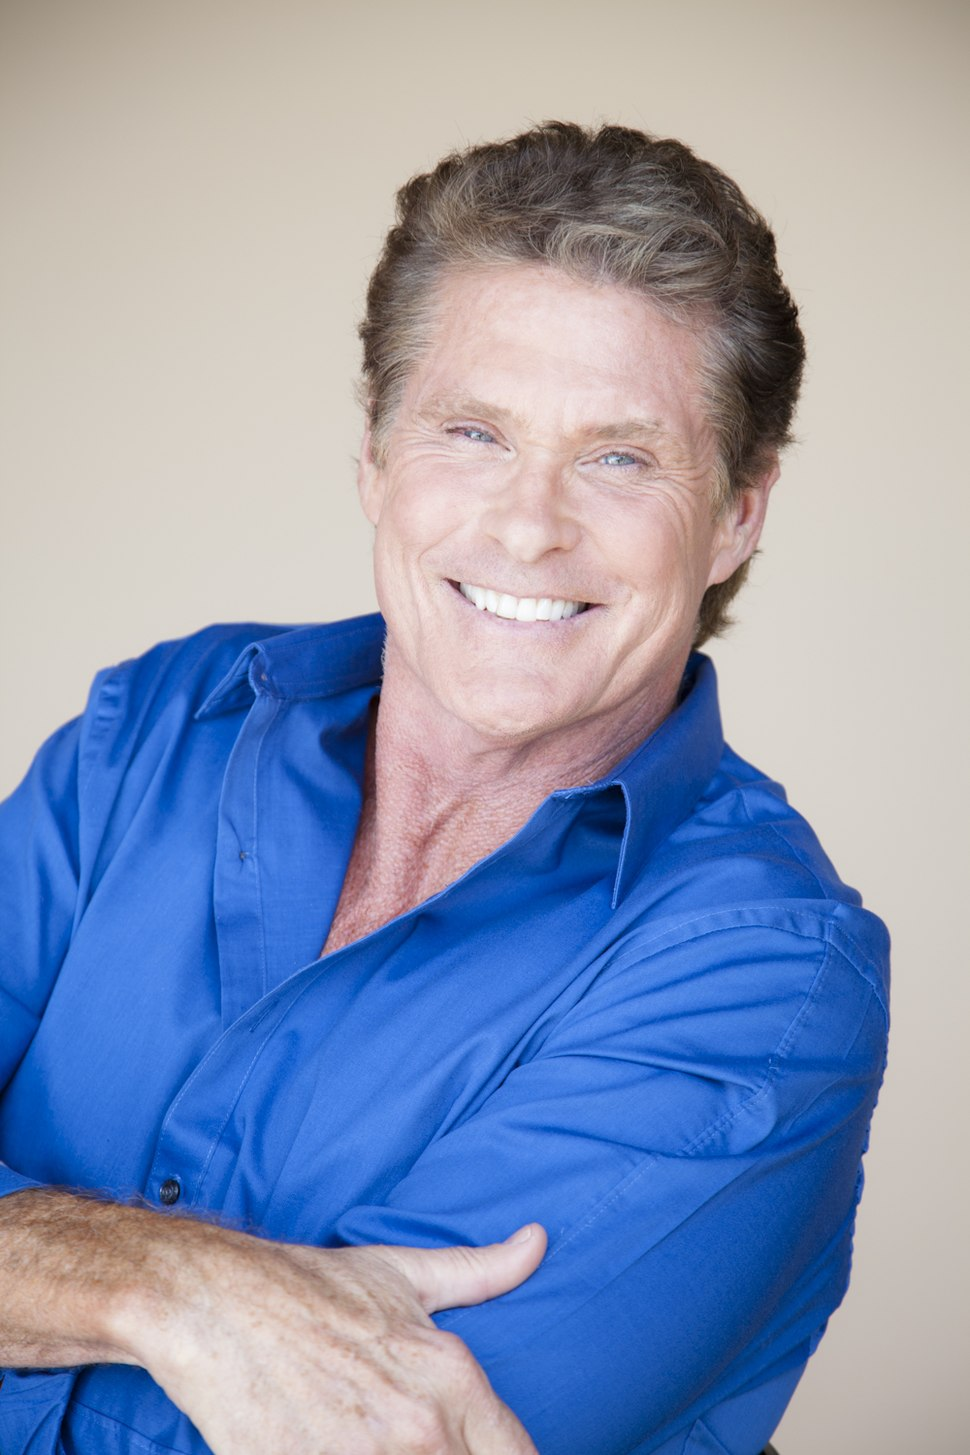 An image of Hasselhoff in a blue collared shirt smiling straight to a camera with his arms crossed